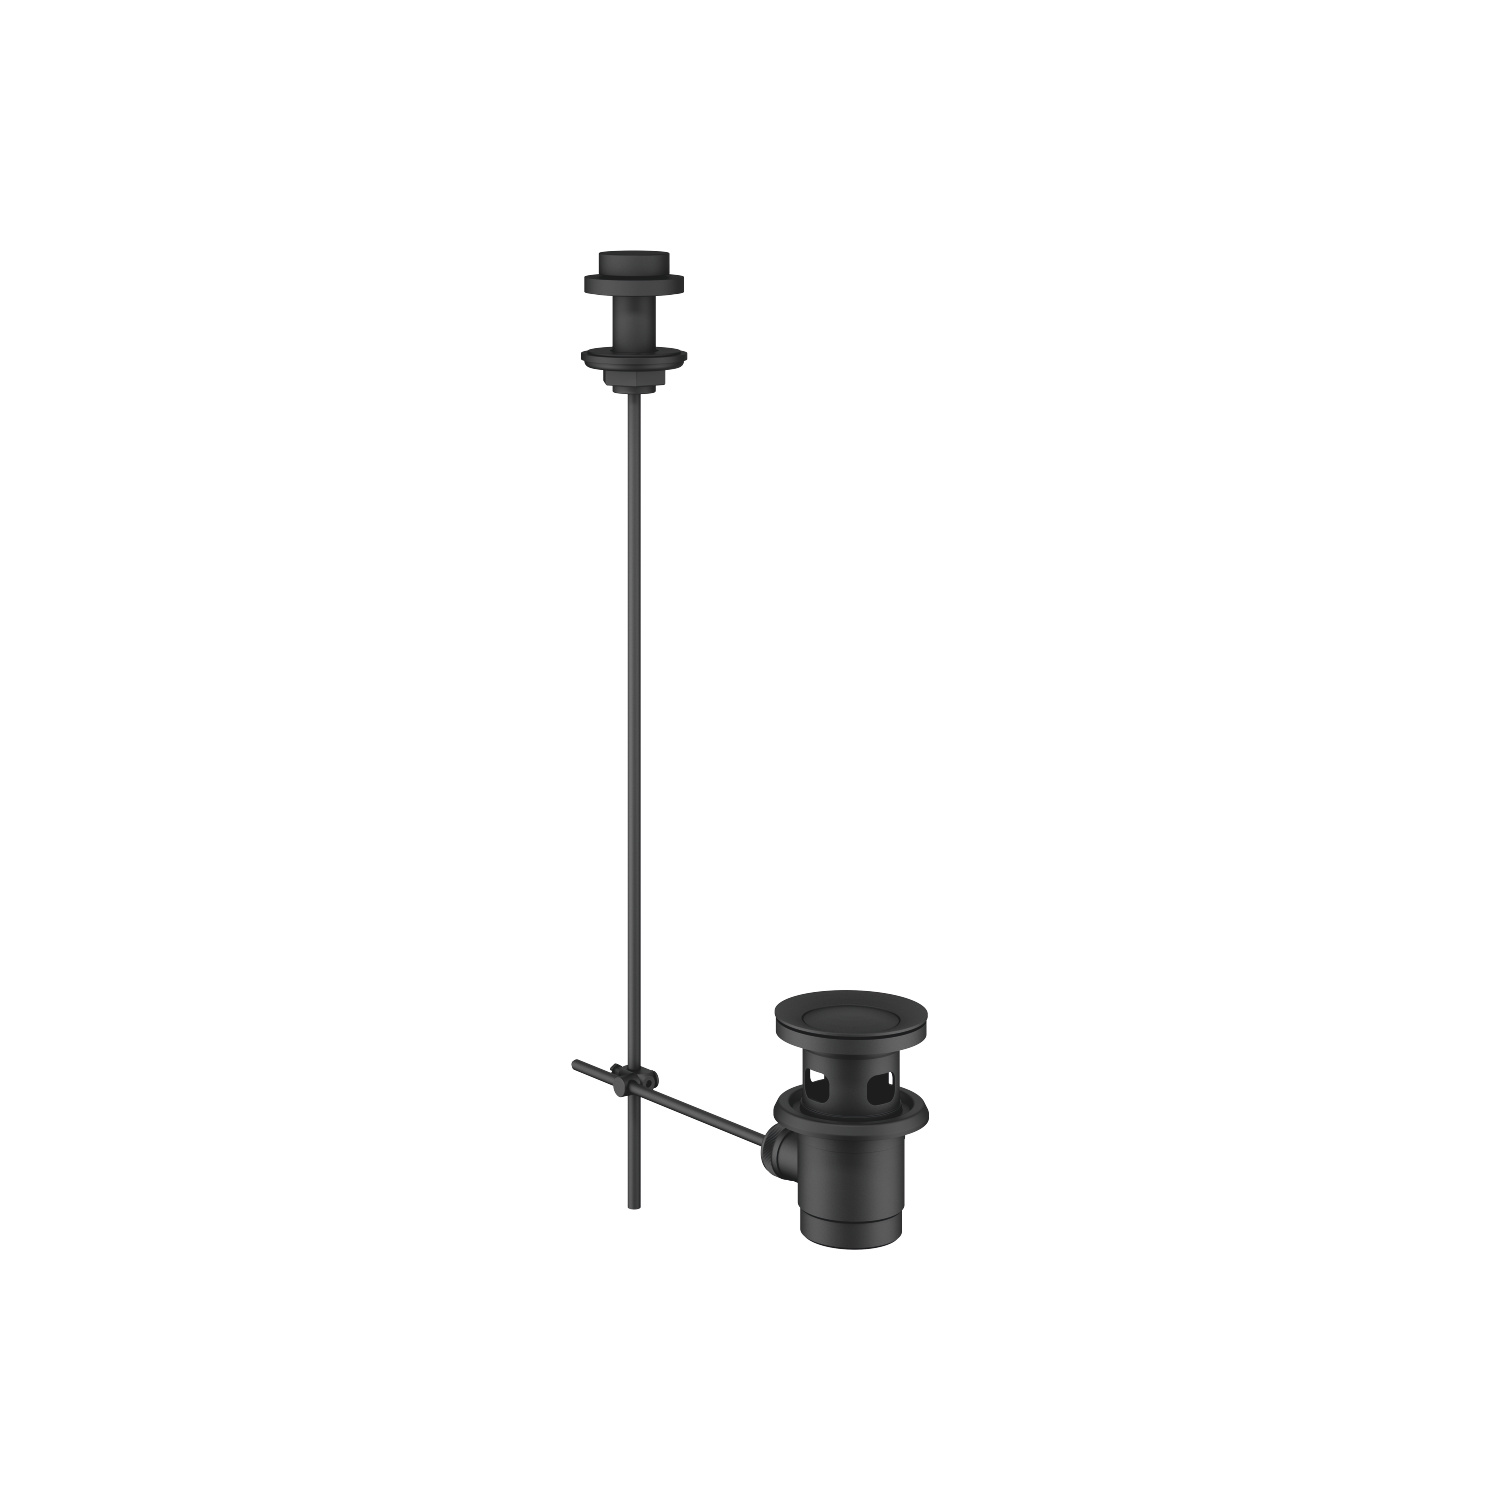 "Basin Waste with knob for deck mounting 1 1/4"" - matt black"